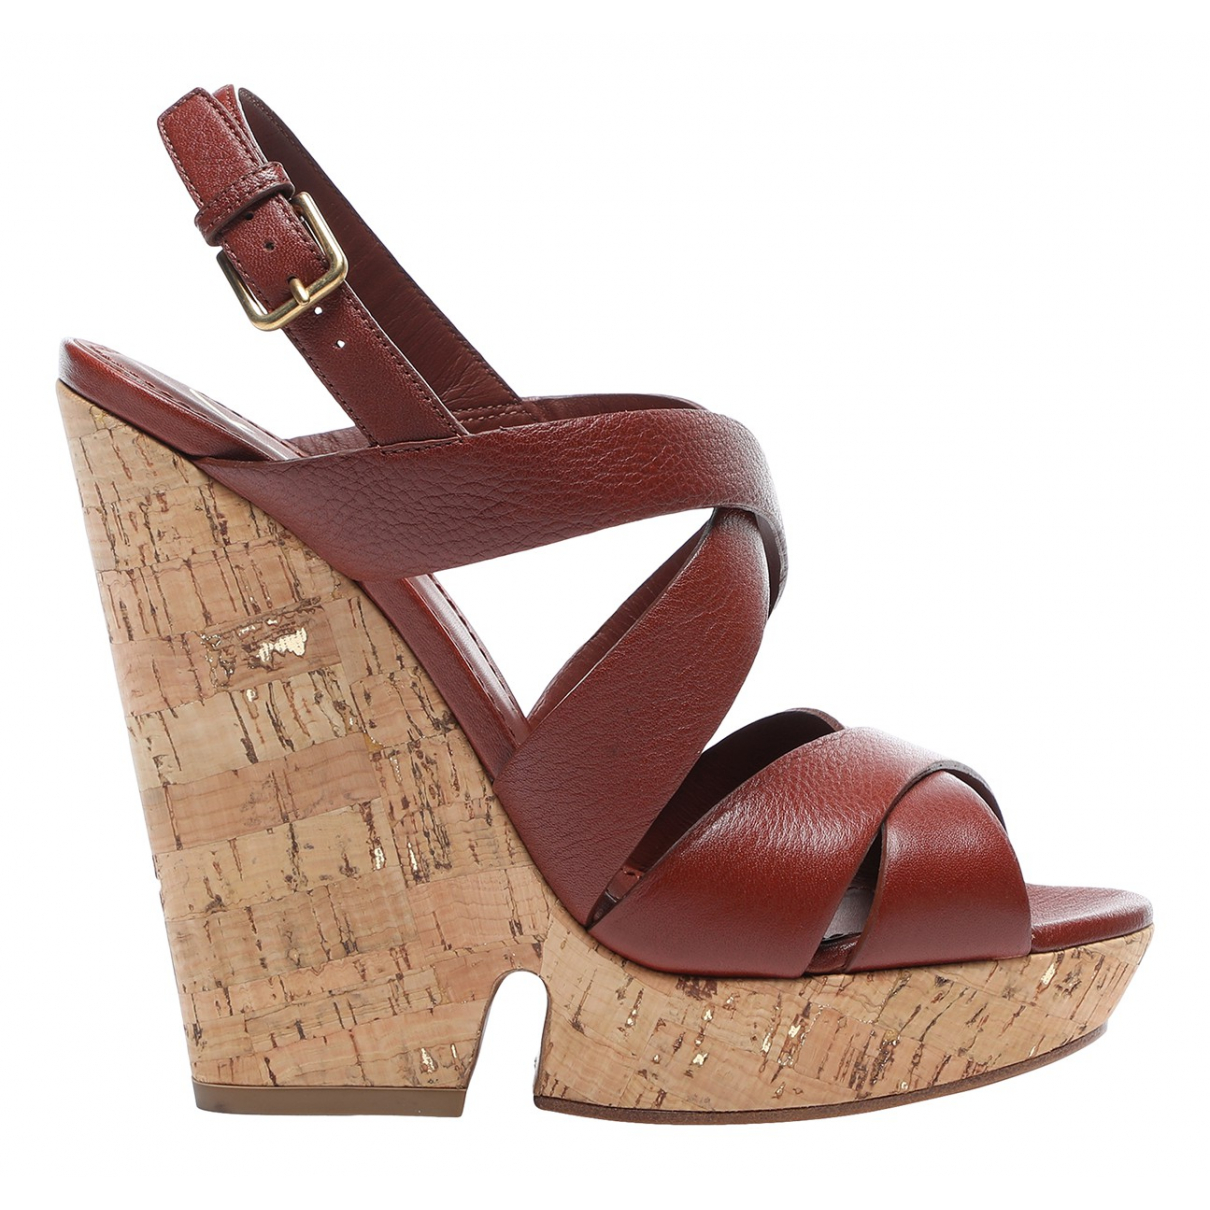 Yves Saint Laurent N Brown Leather Sandals for Women 38 EU